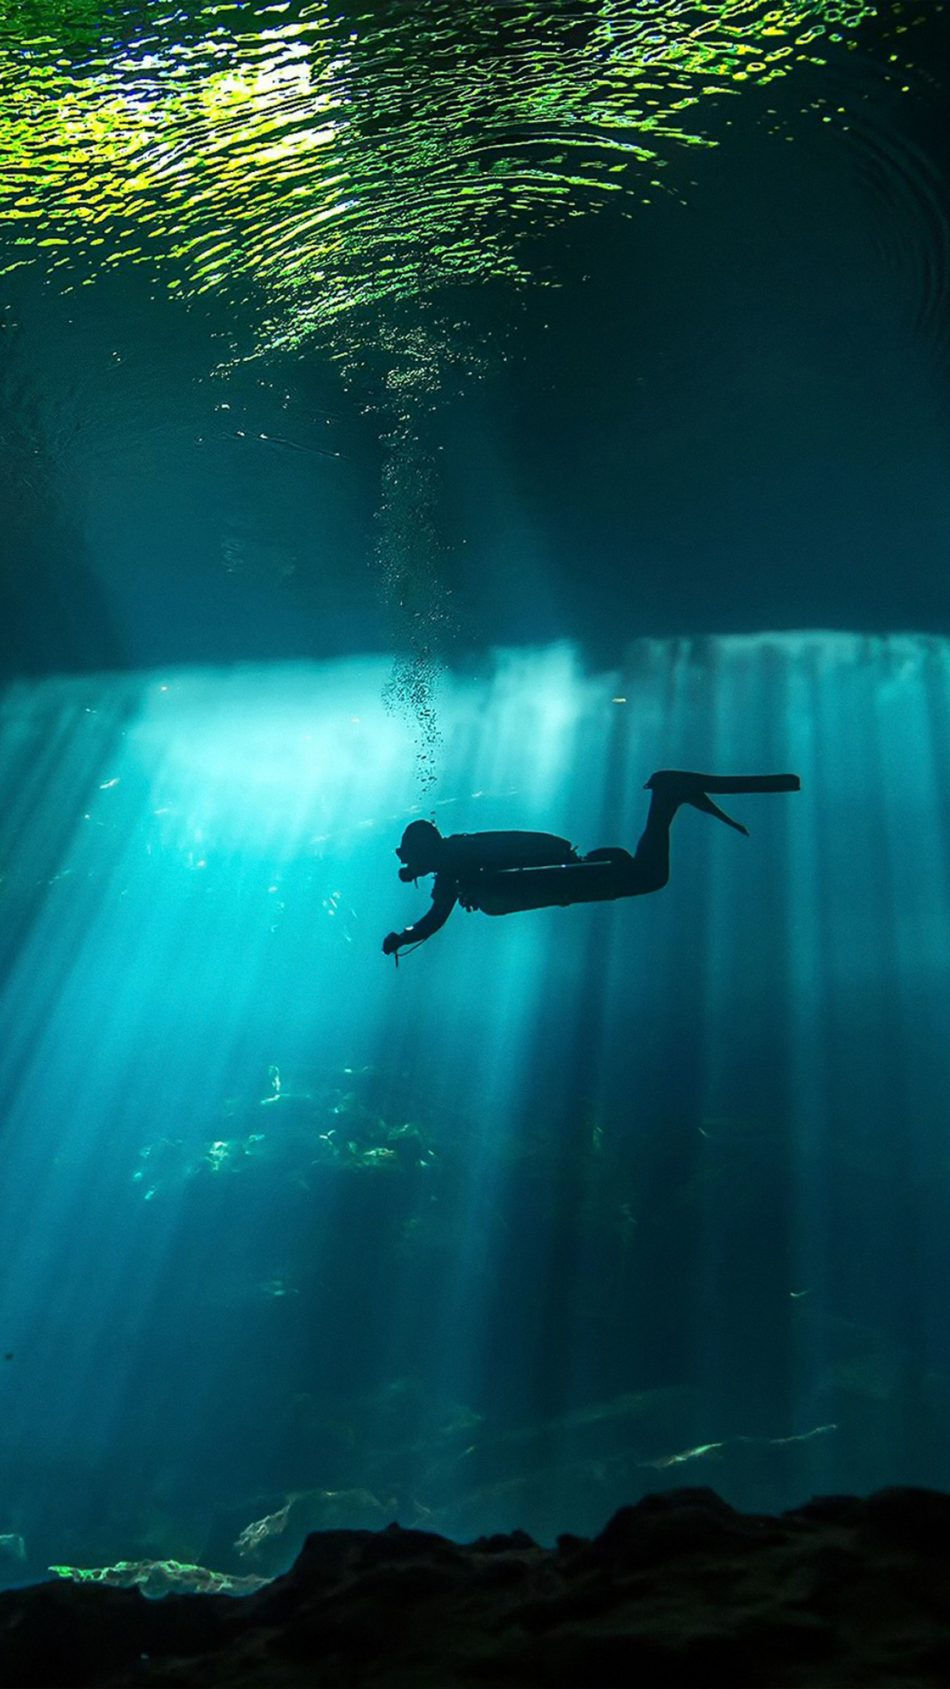 Diver Underwater Sunbeam 4K Ultra HD Mobile Wallpaper